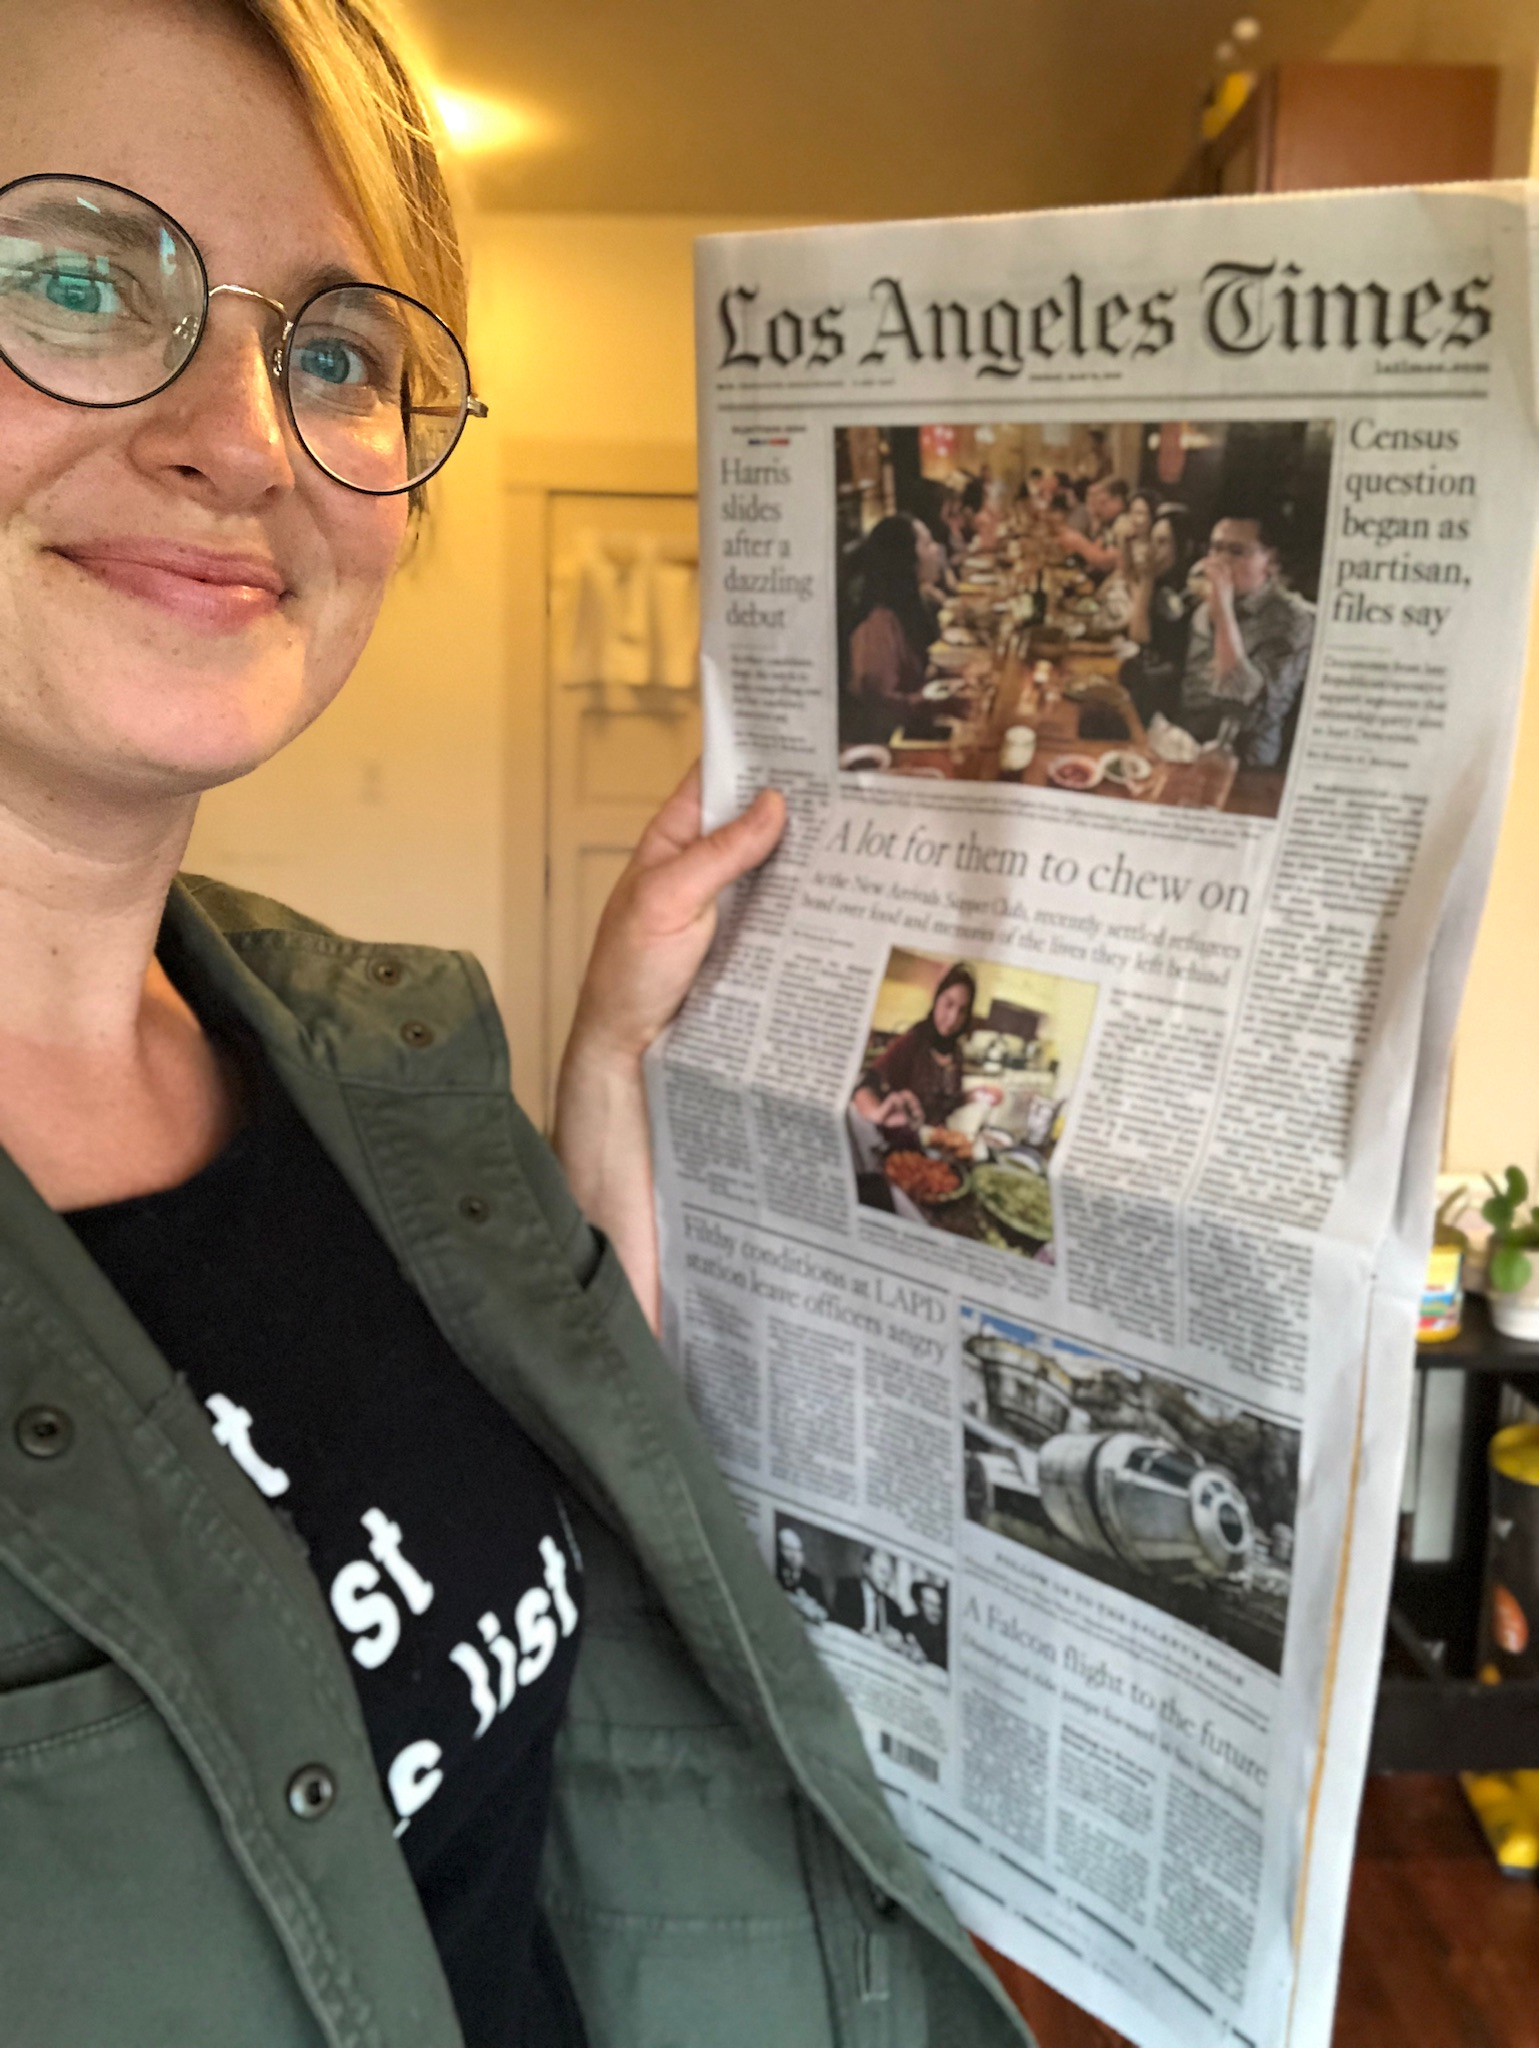 FRONT PAGE NEWS IN THE LA TIMES